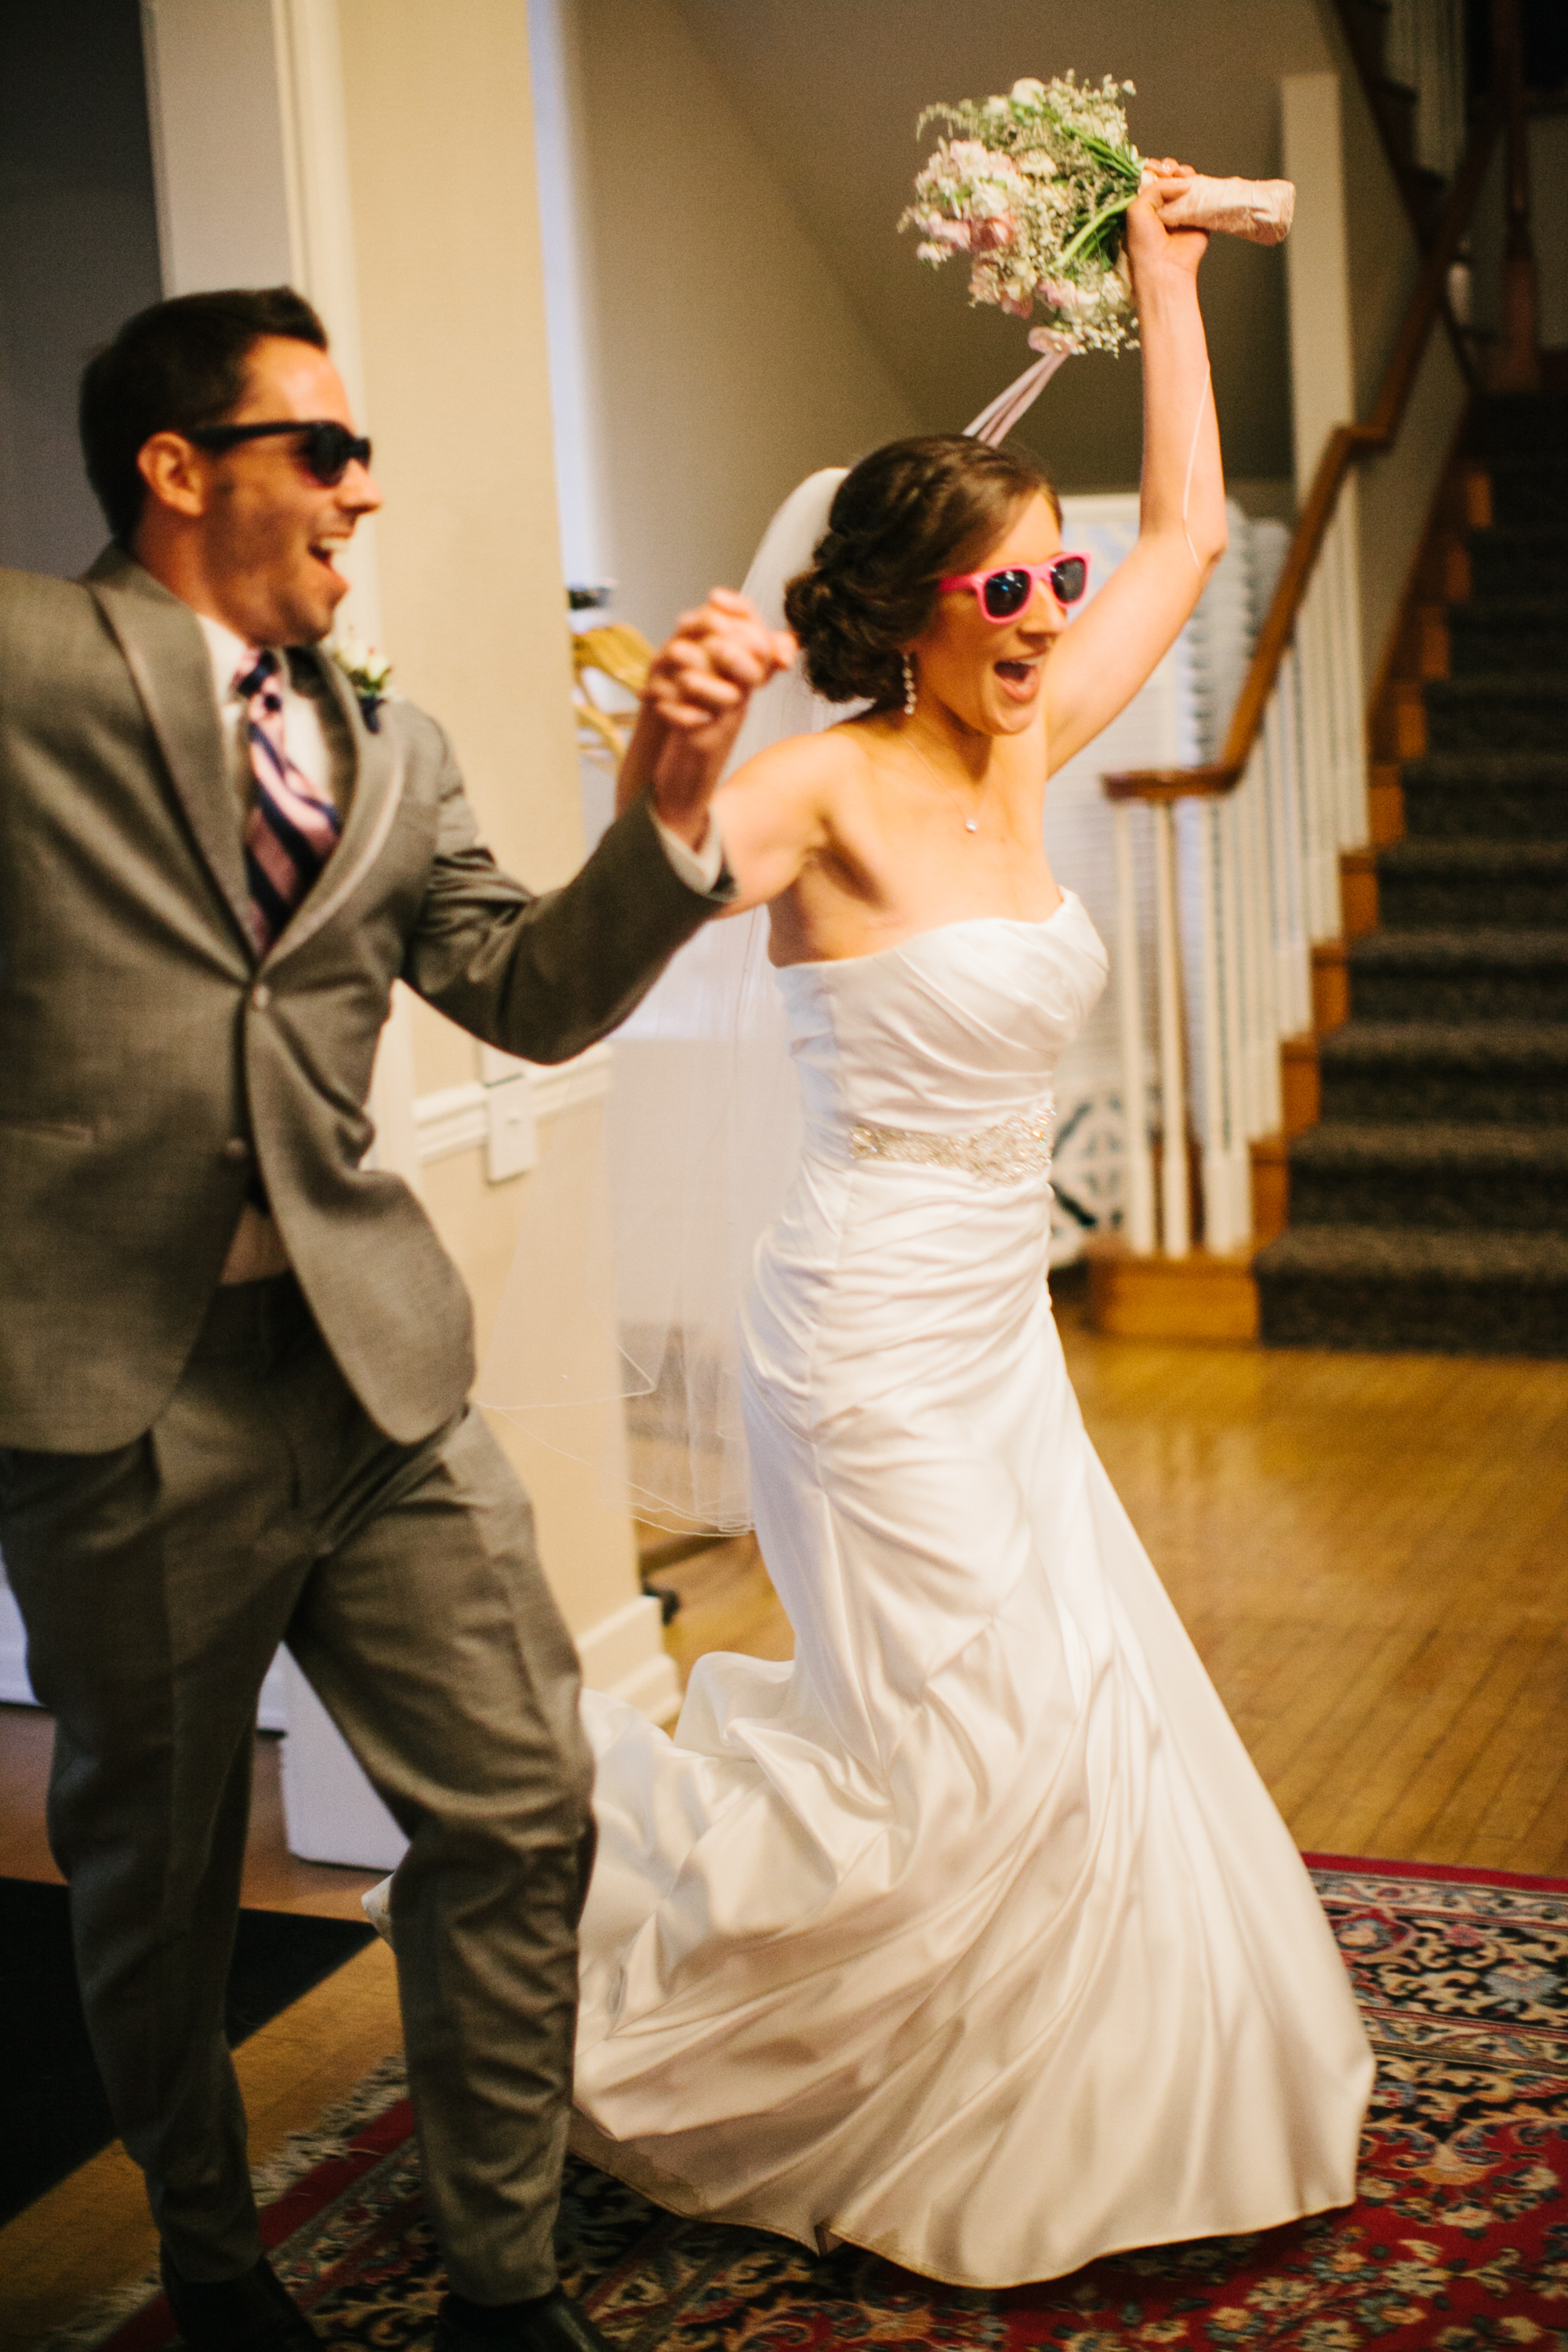 Kari And Mitch Used Sign Sealed Delivered Im Yours Stevie Wonder As The Song For Their Entrance Rocked Sunglasses